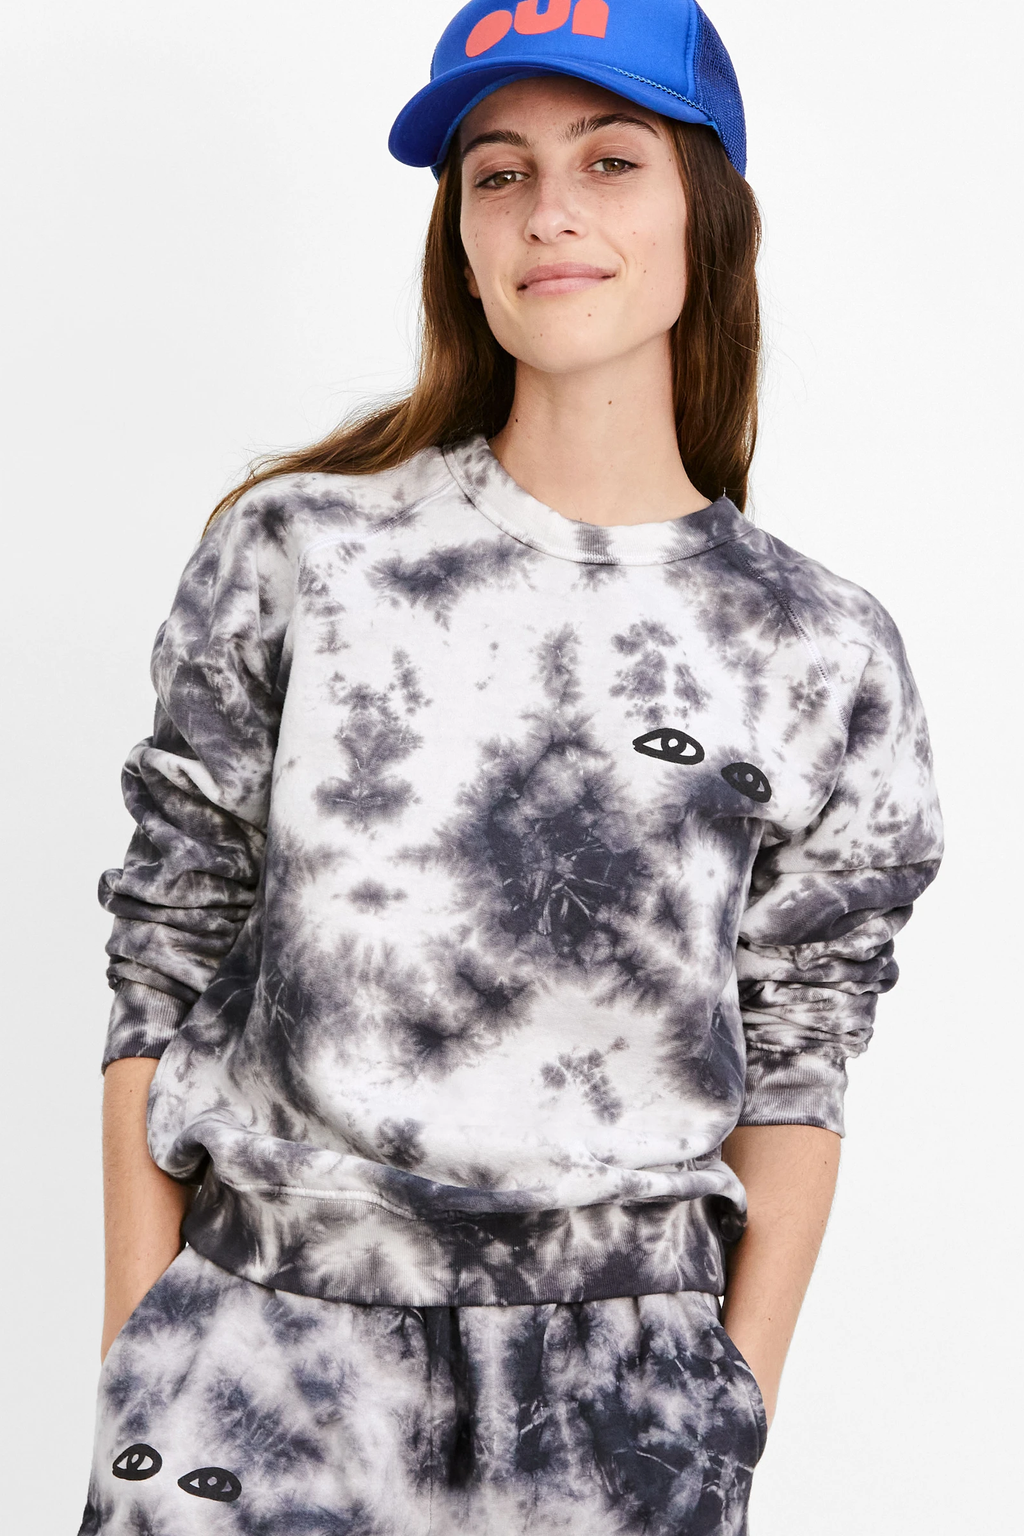 clare v. sweatshirt black white tie dye with eyes